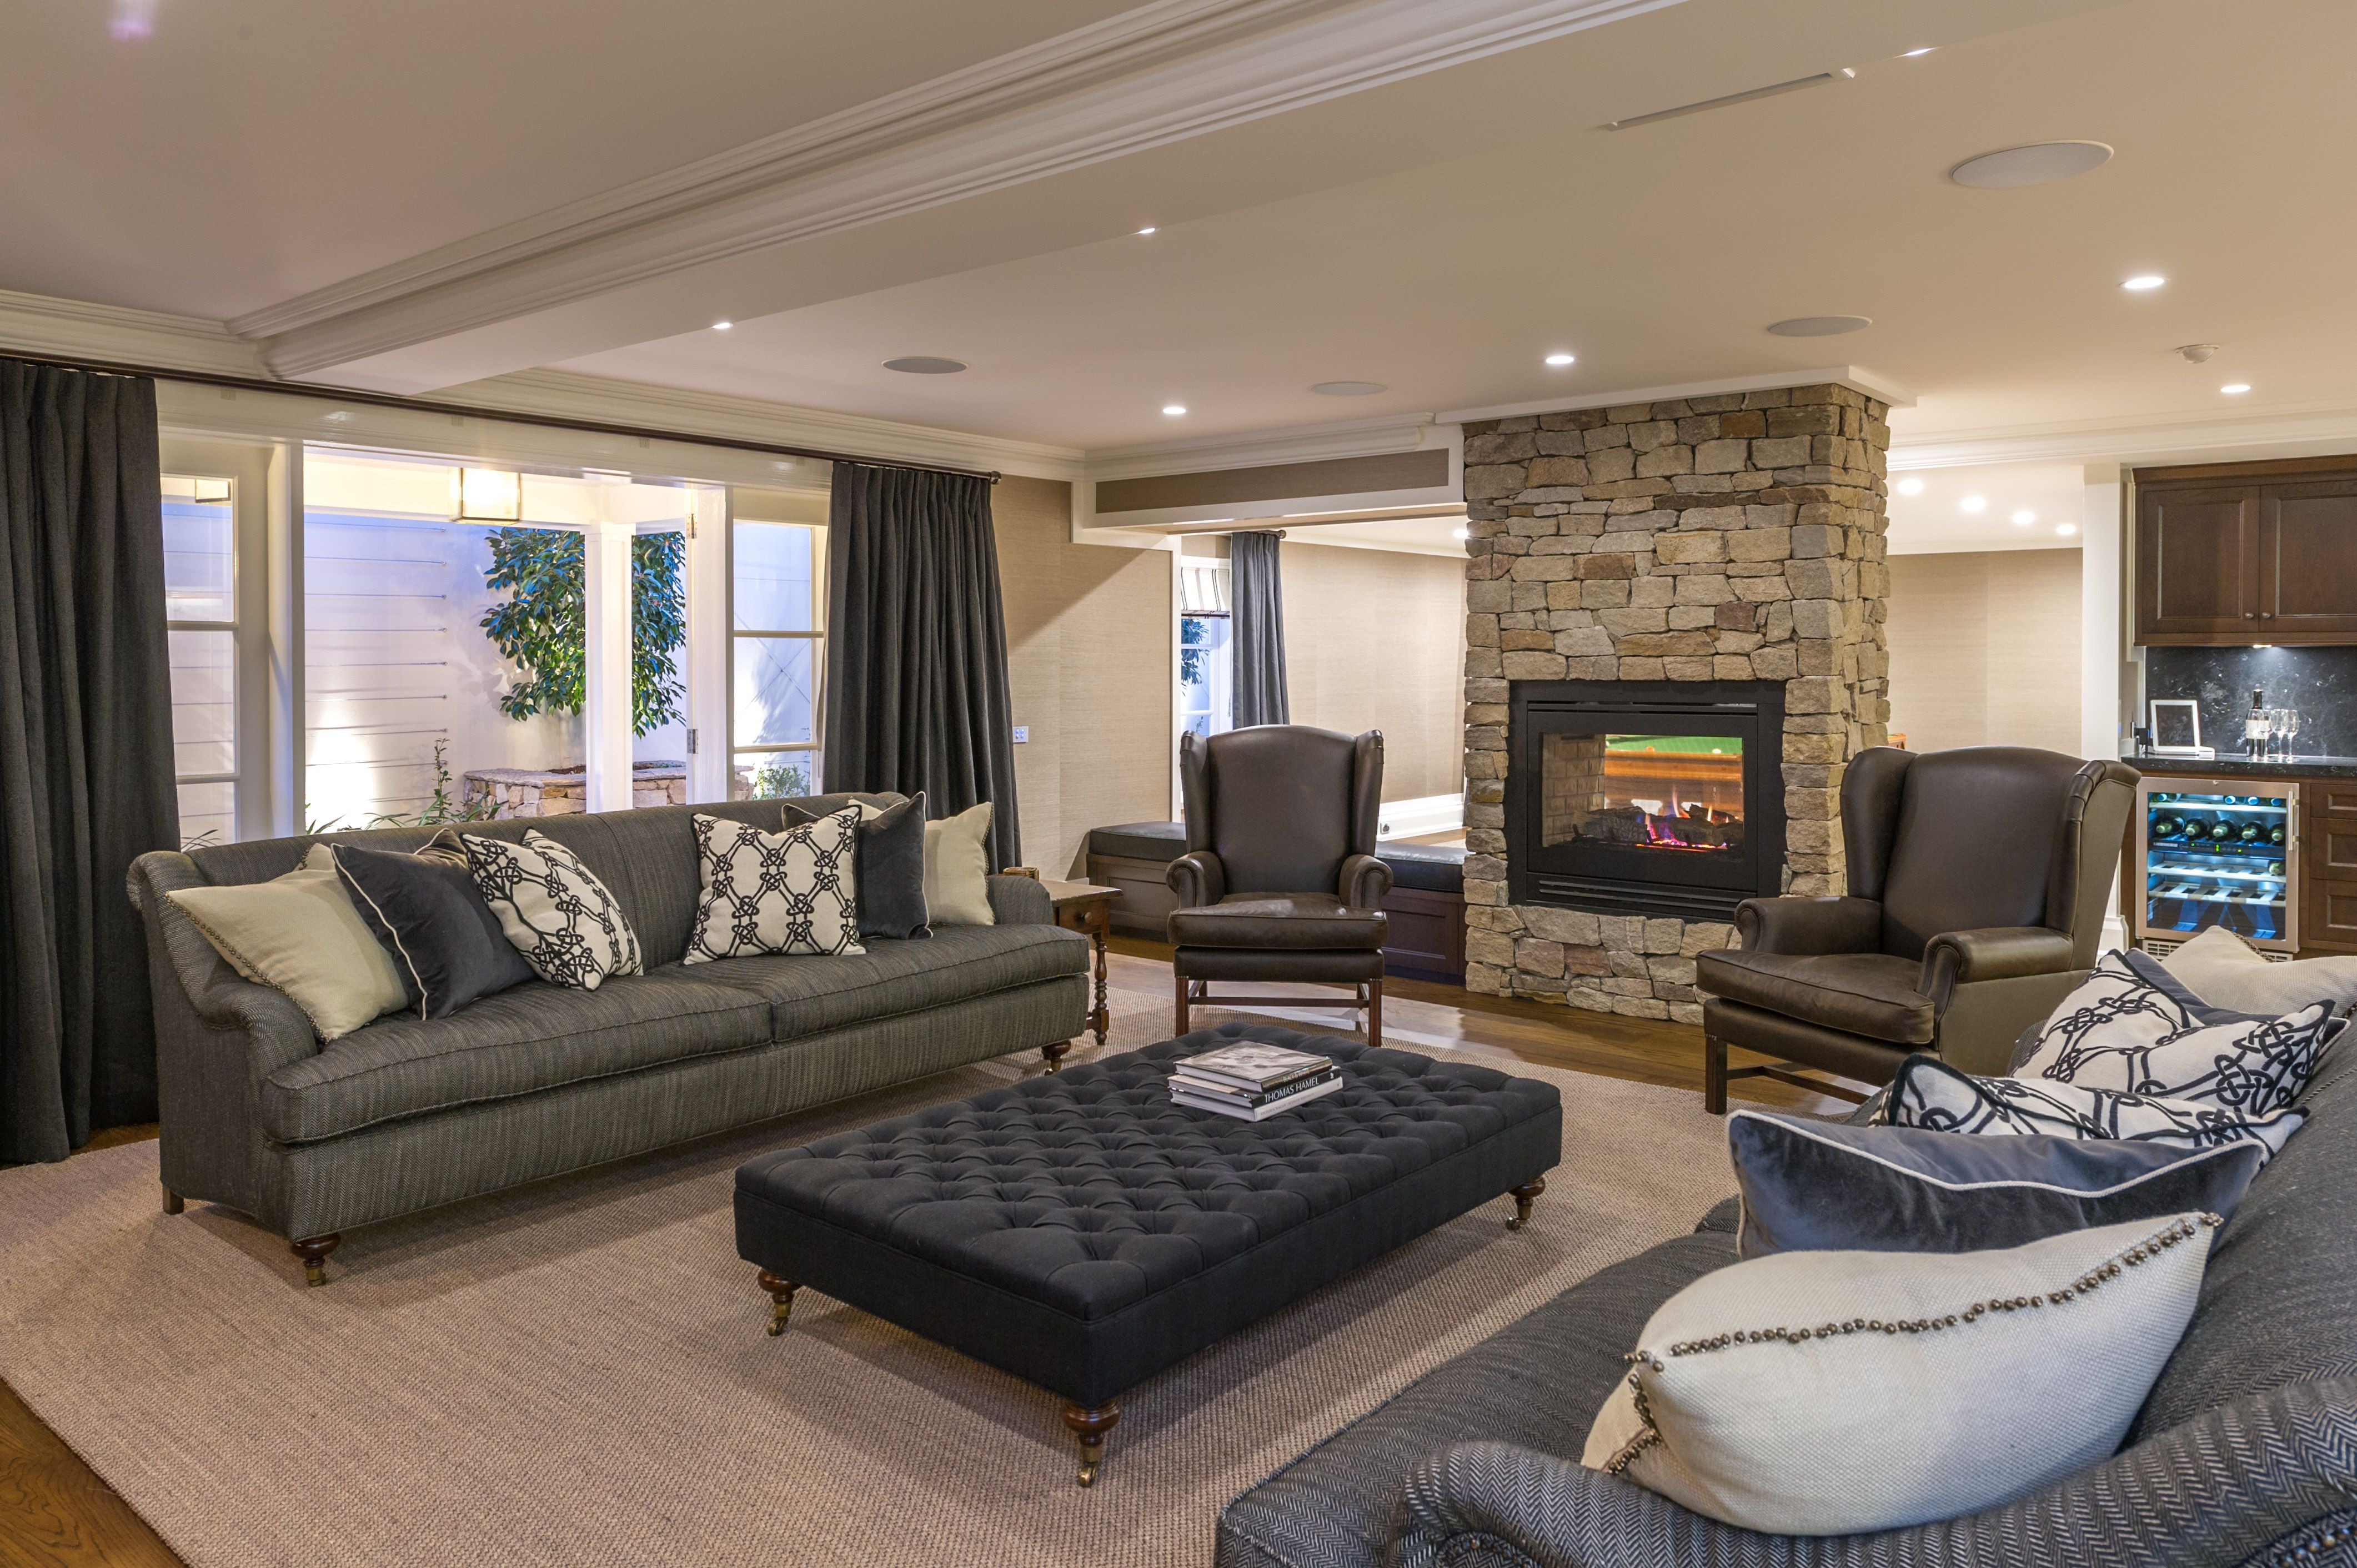 Luxury home smart home integration Home, Residential